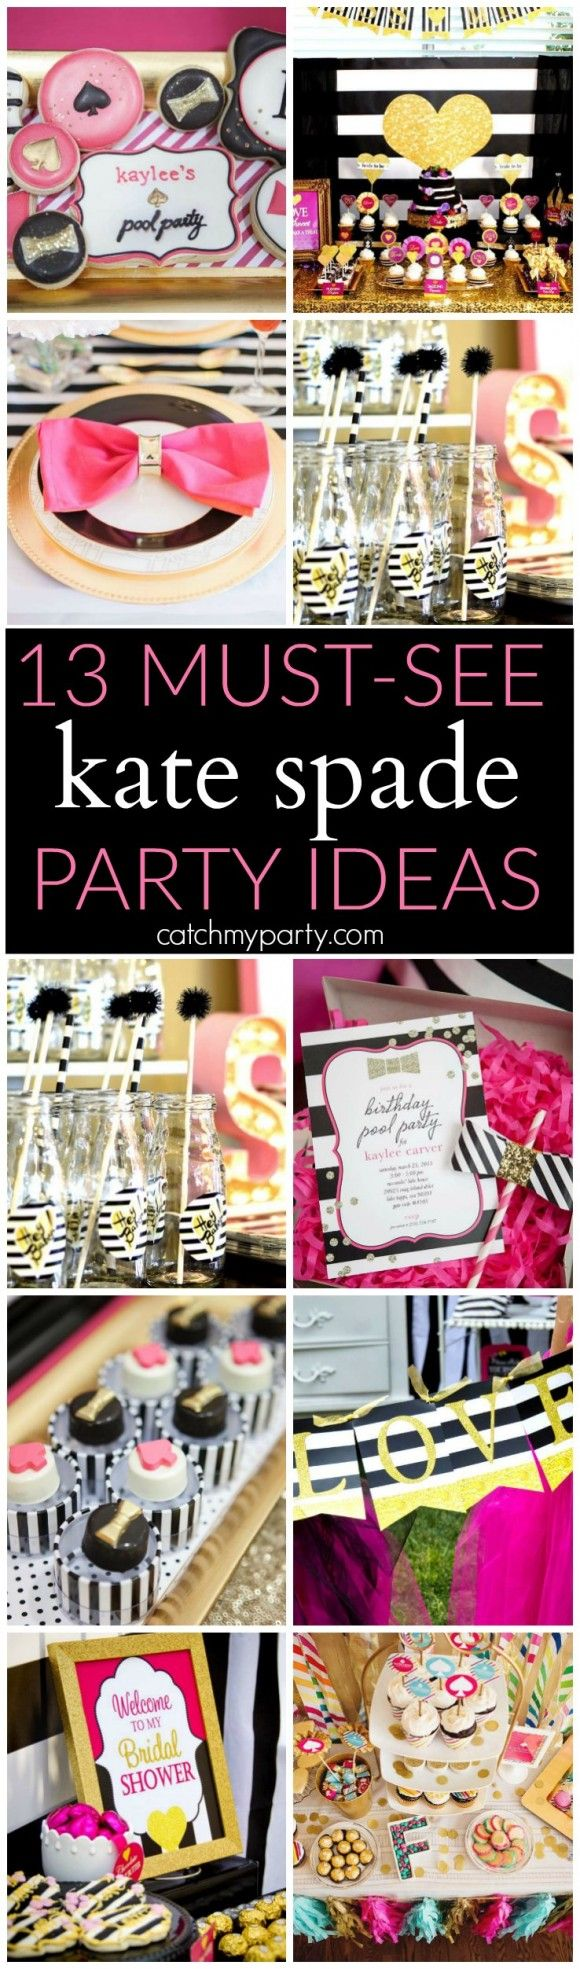 13 Awesome Kate Spade Party Ideas